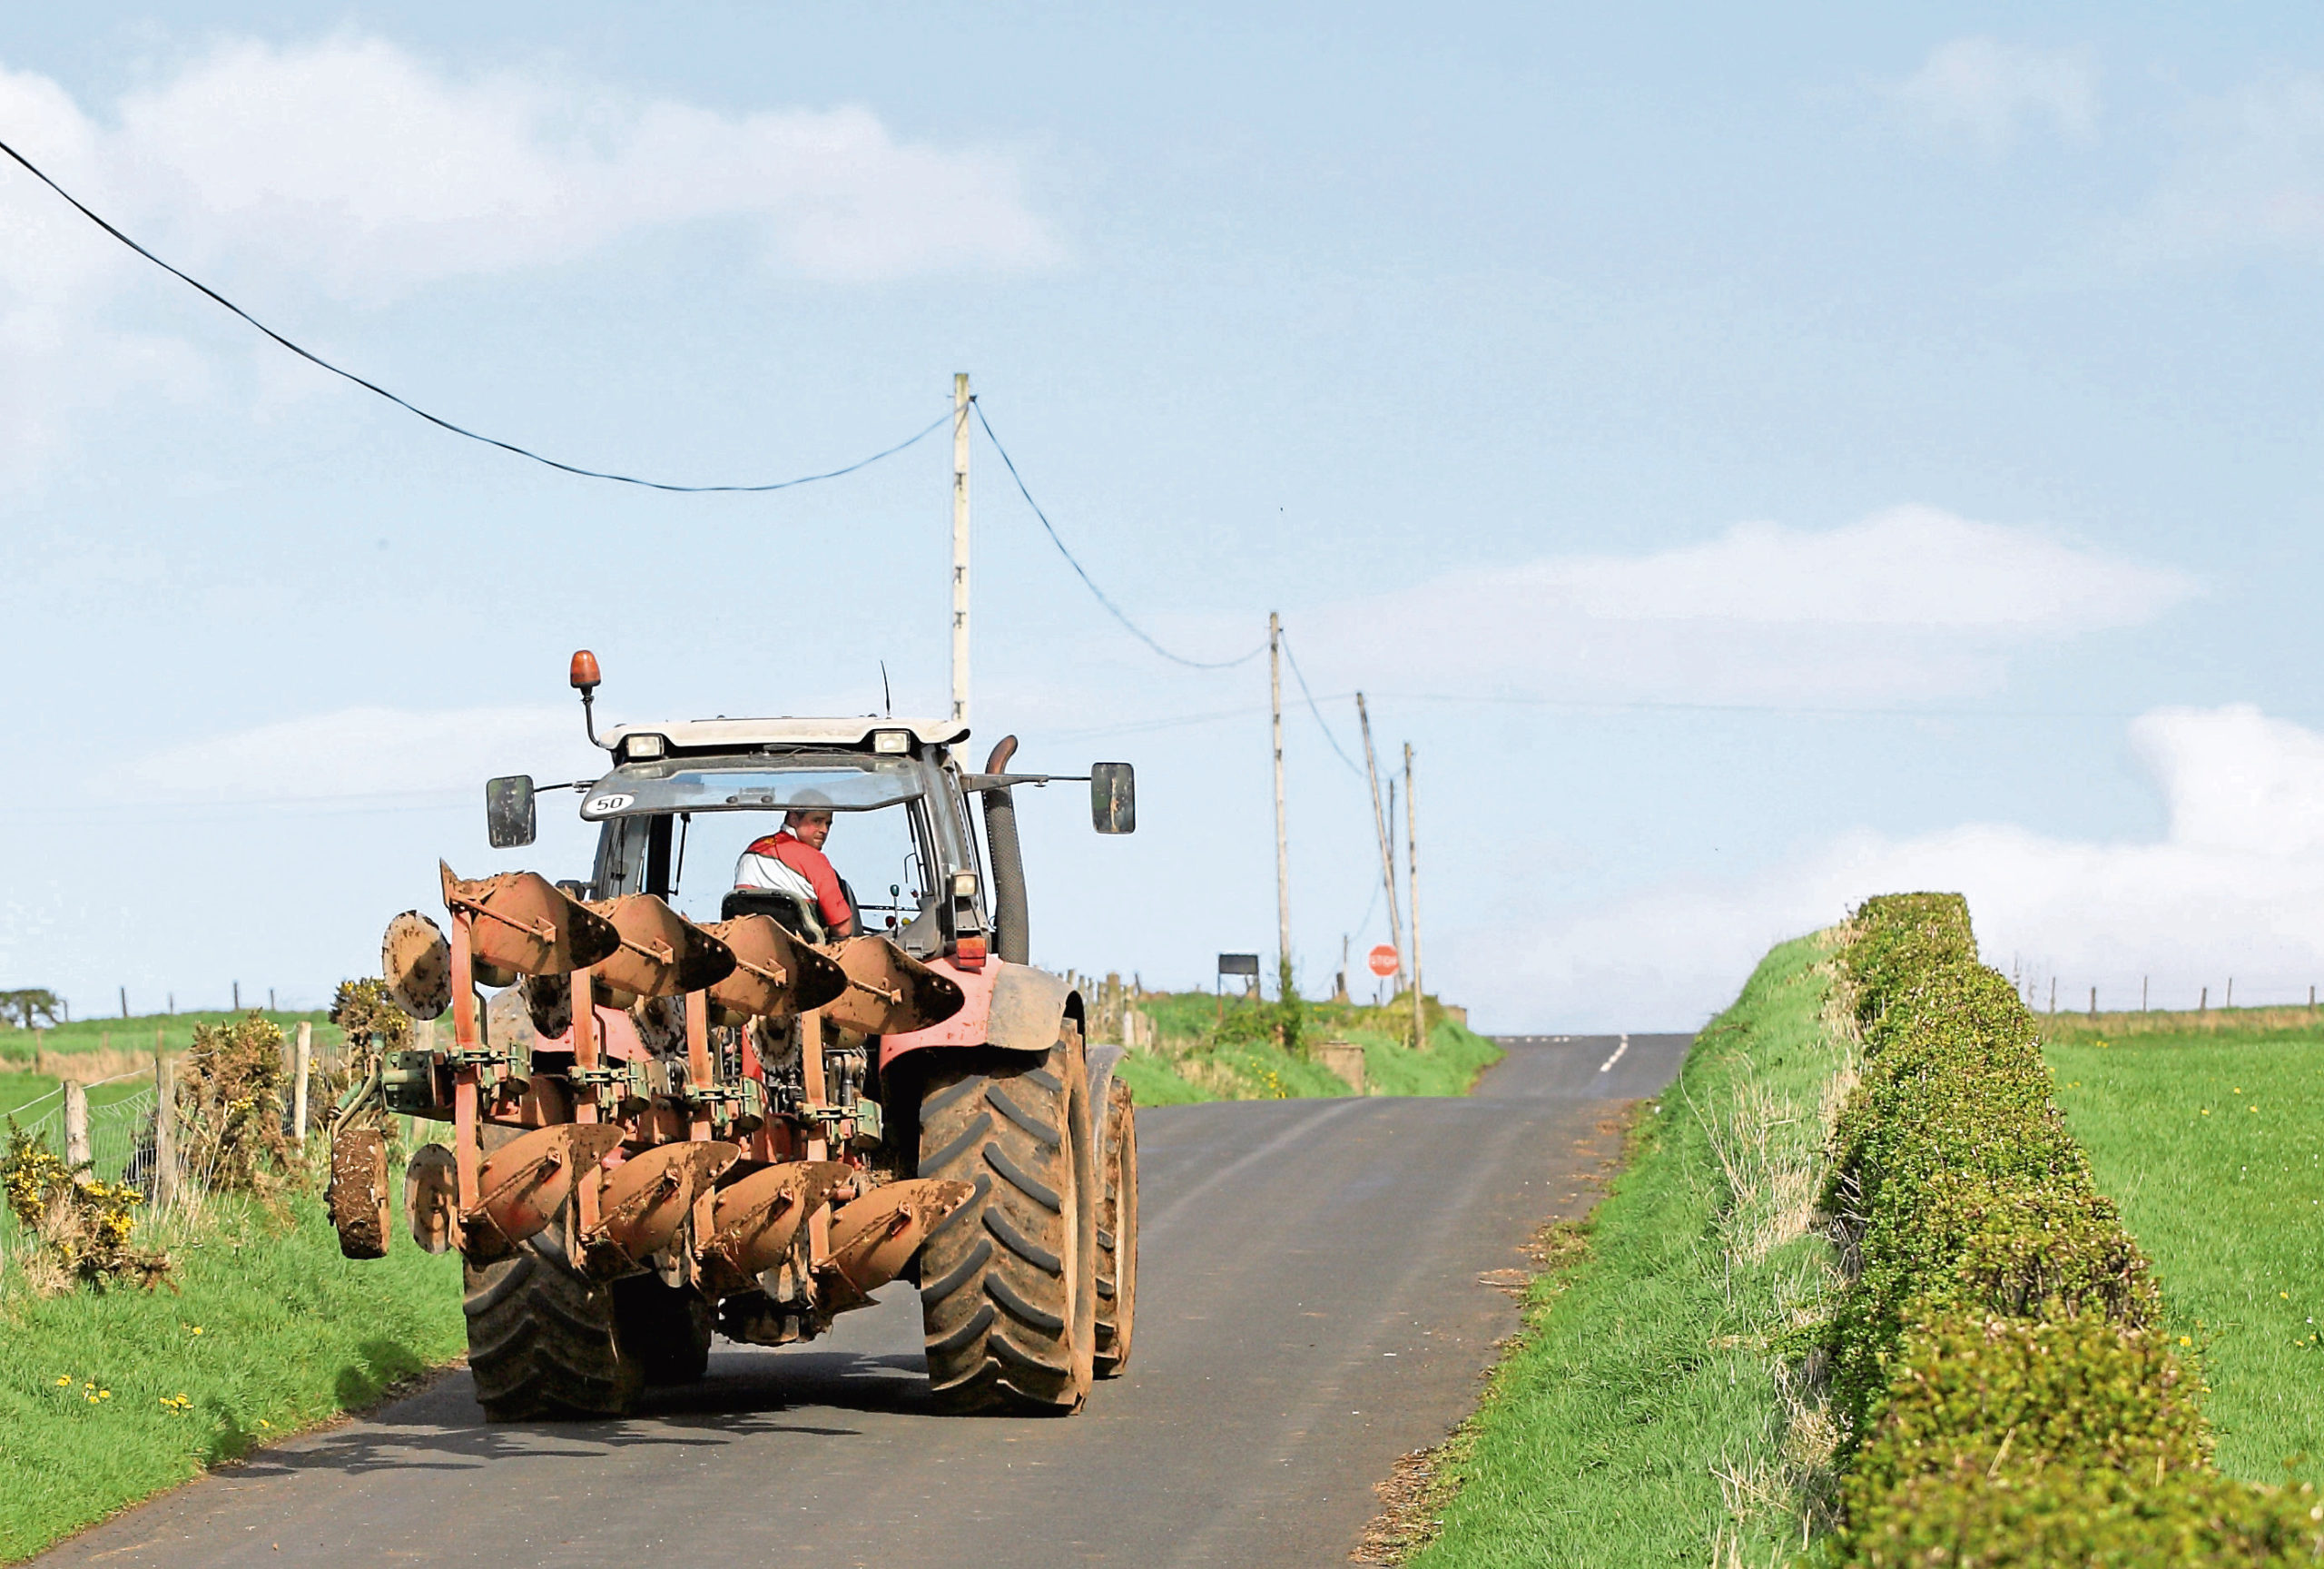 Farmers are being urged to look at situations with a fresh pair of eyes and help each other by pointing out risks when they see them.